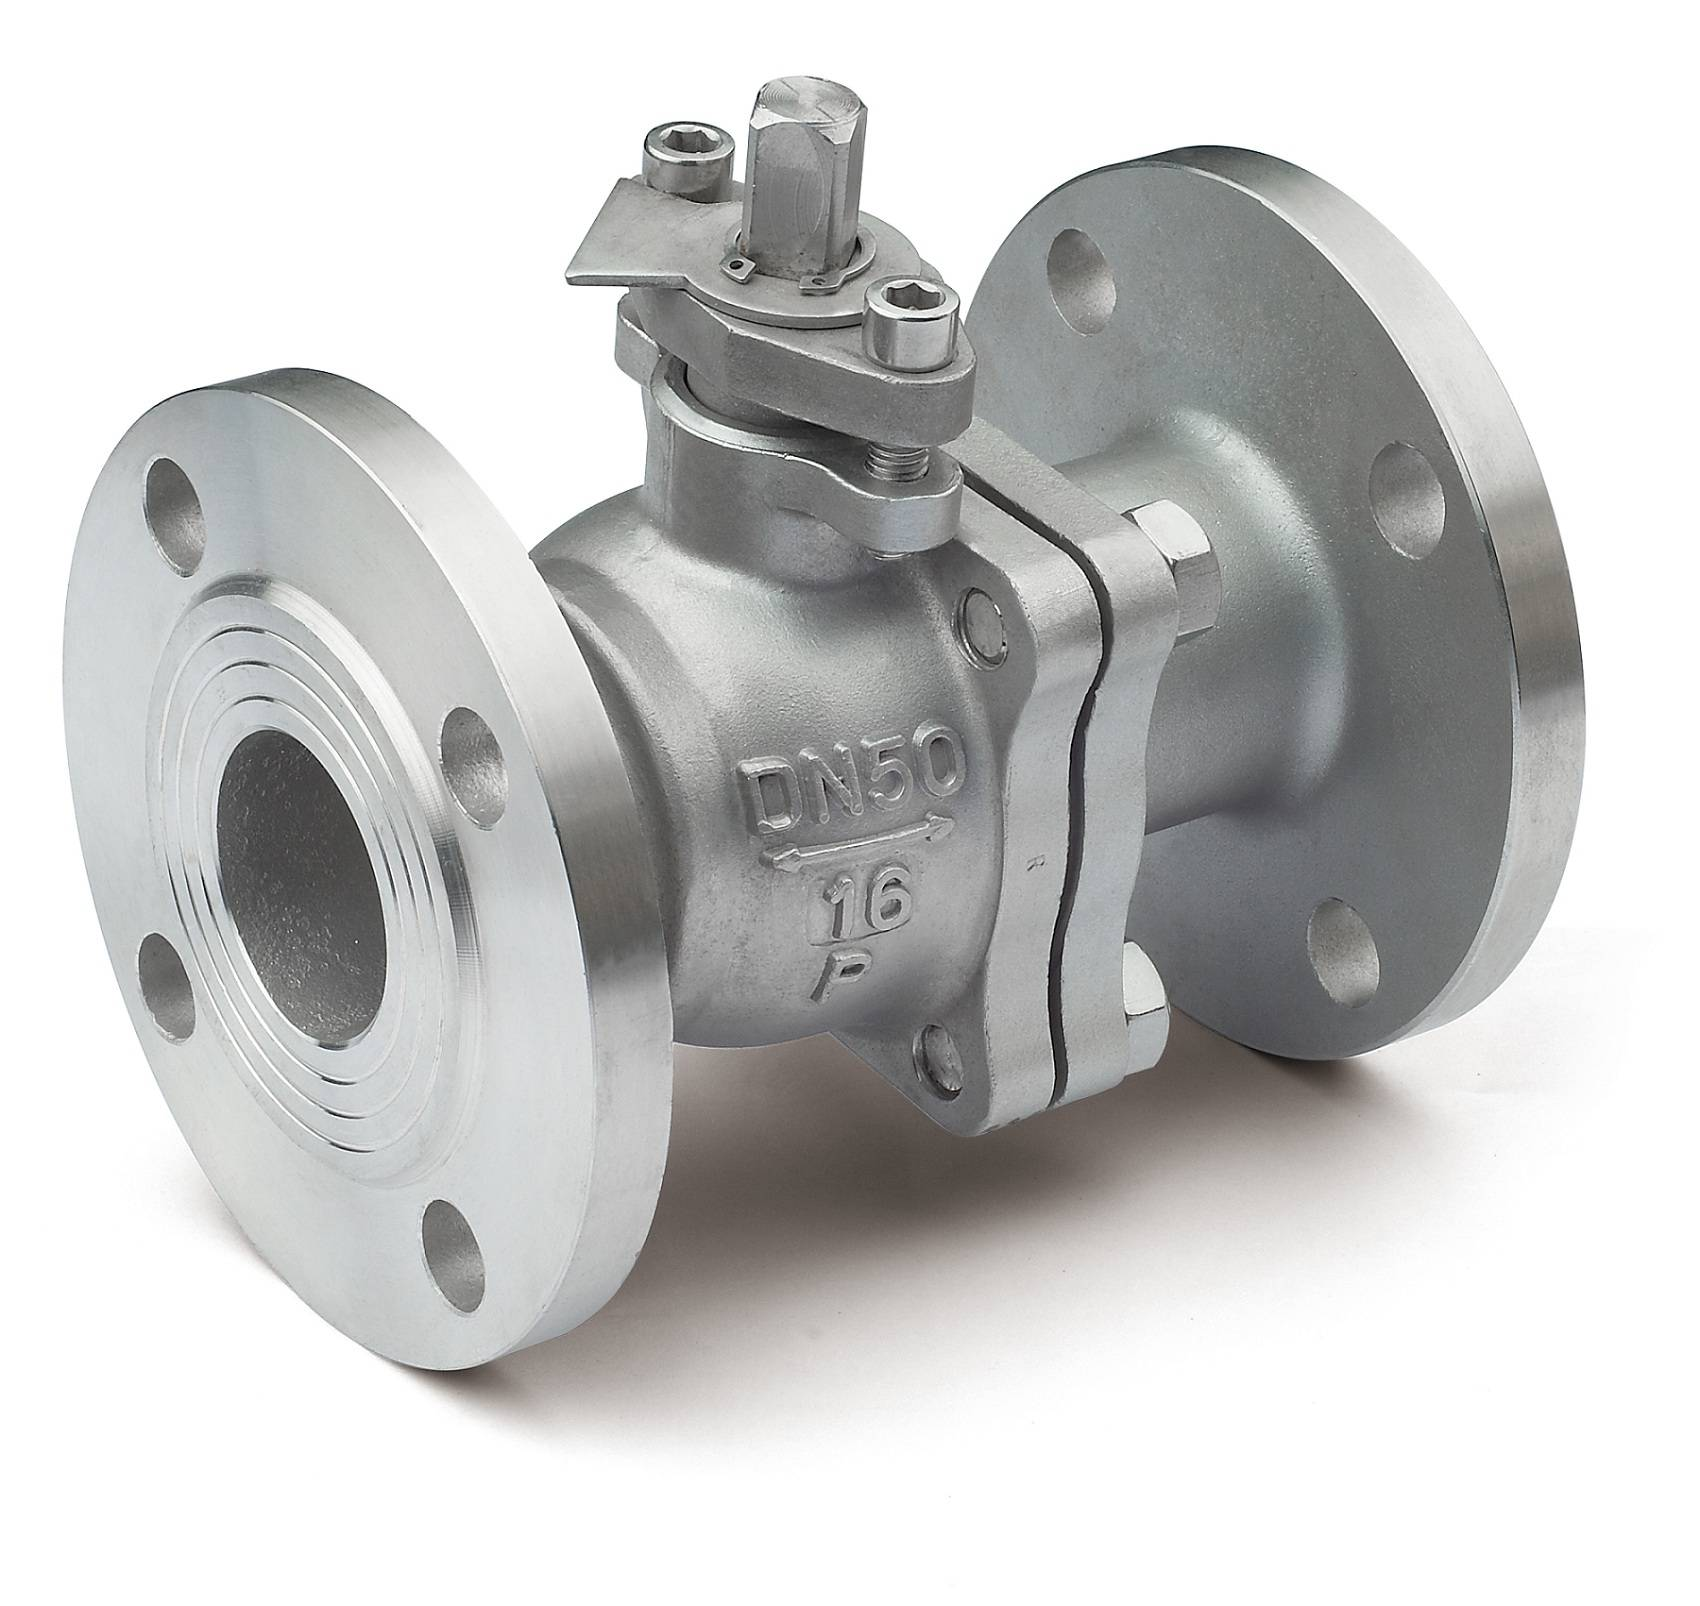 2 Piece Stainless Steel Flanged Ball Valve with Mounting Pad